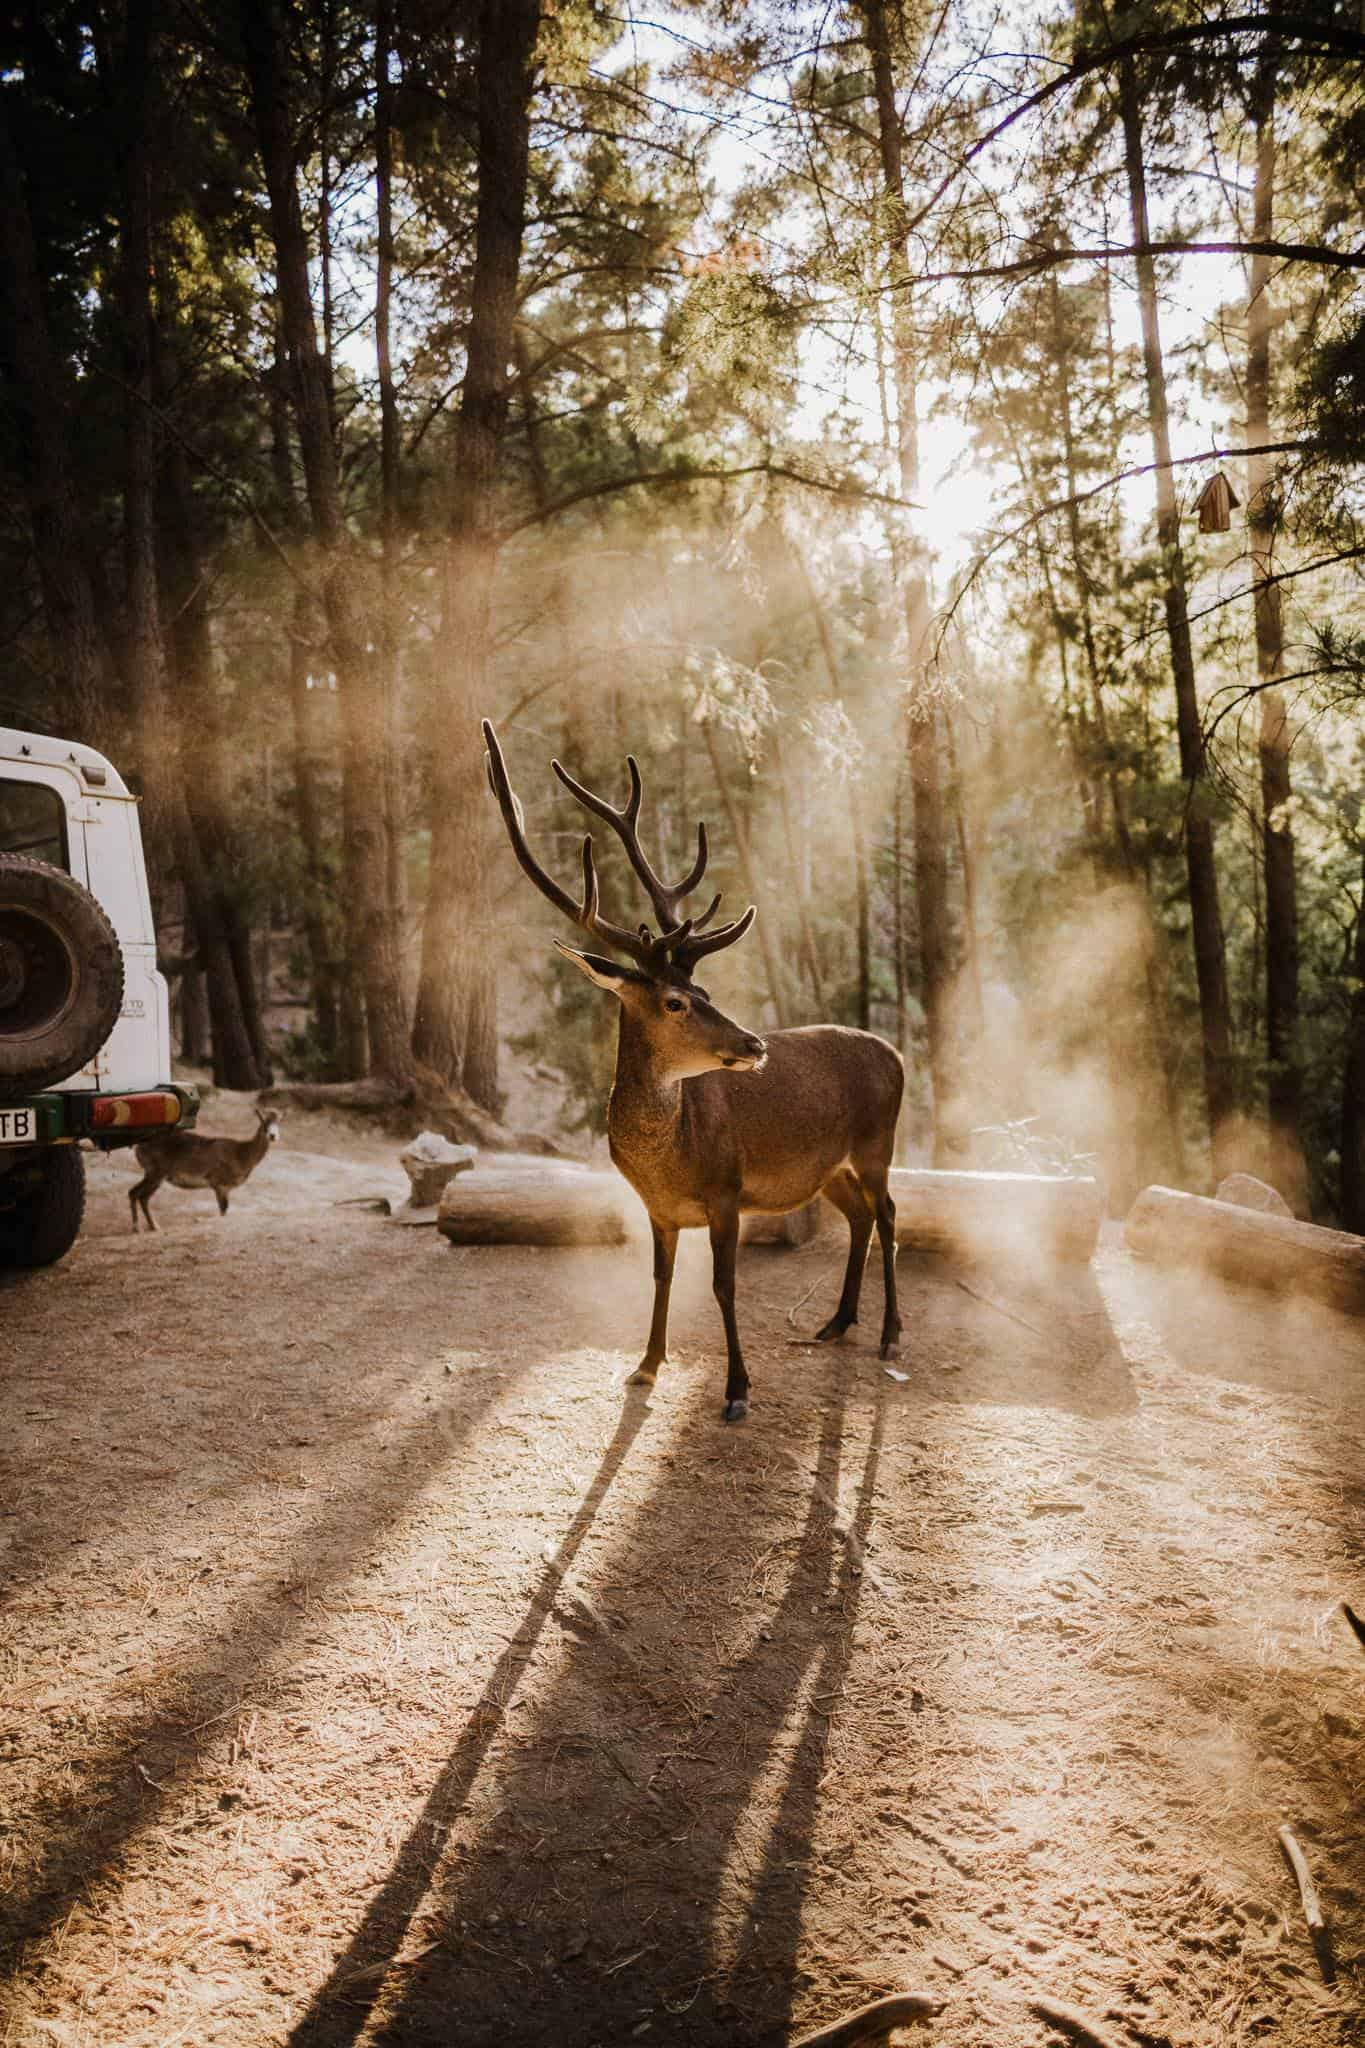 deers are beautiful animals, this one waits in a sunbeam